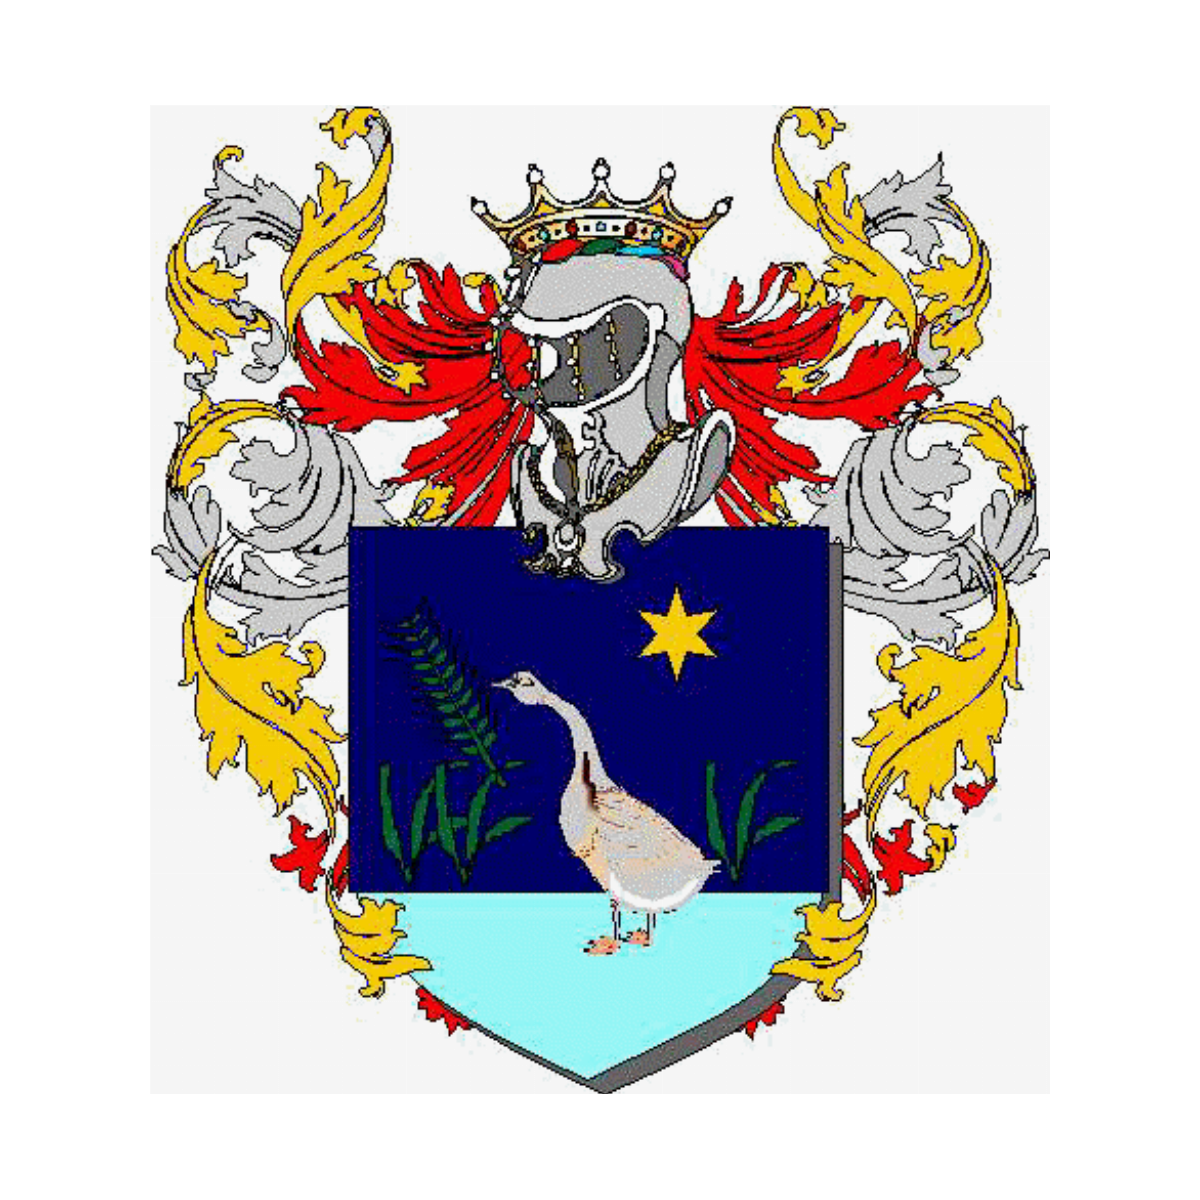 Candelora family,heraldry,genealogy,Coat of arms and origin.